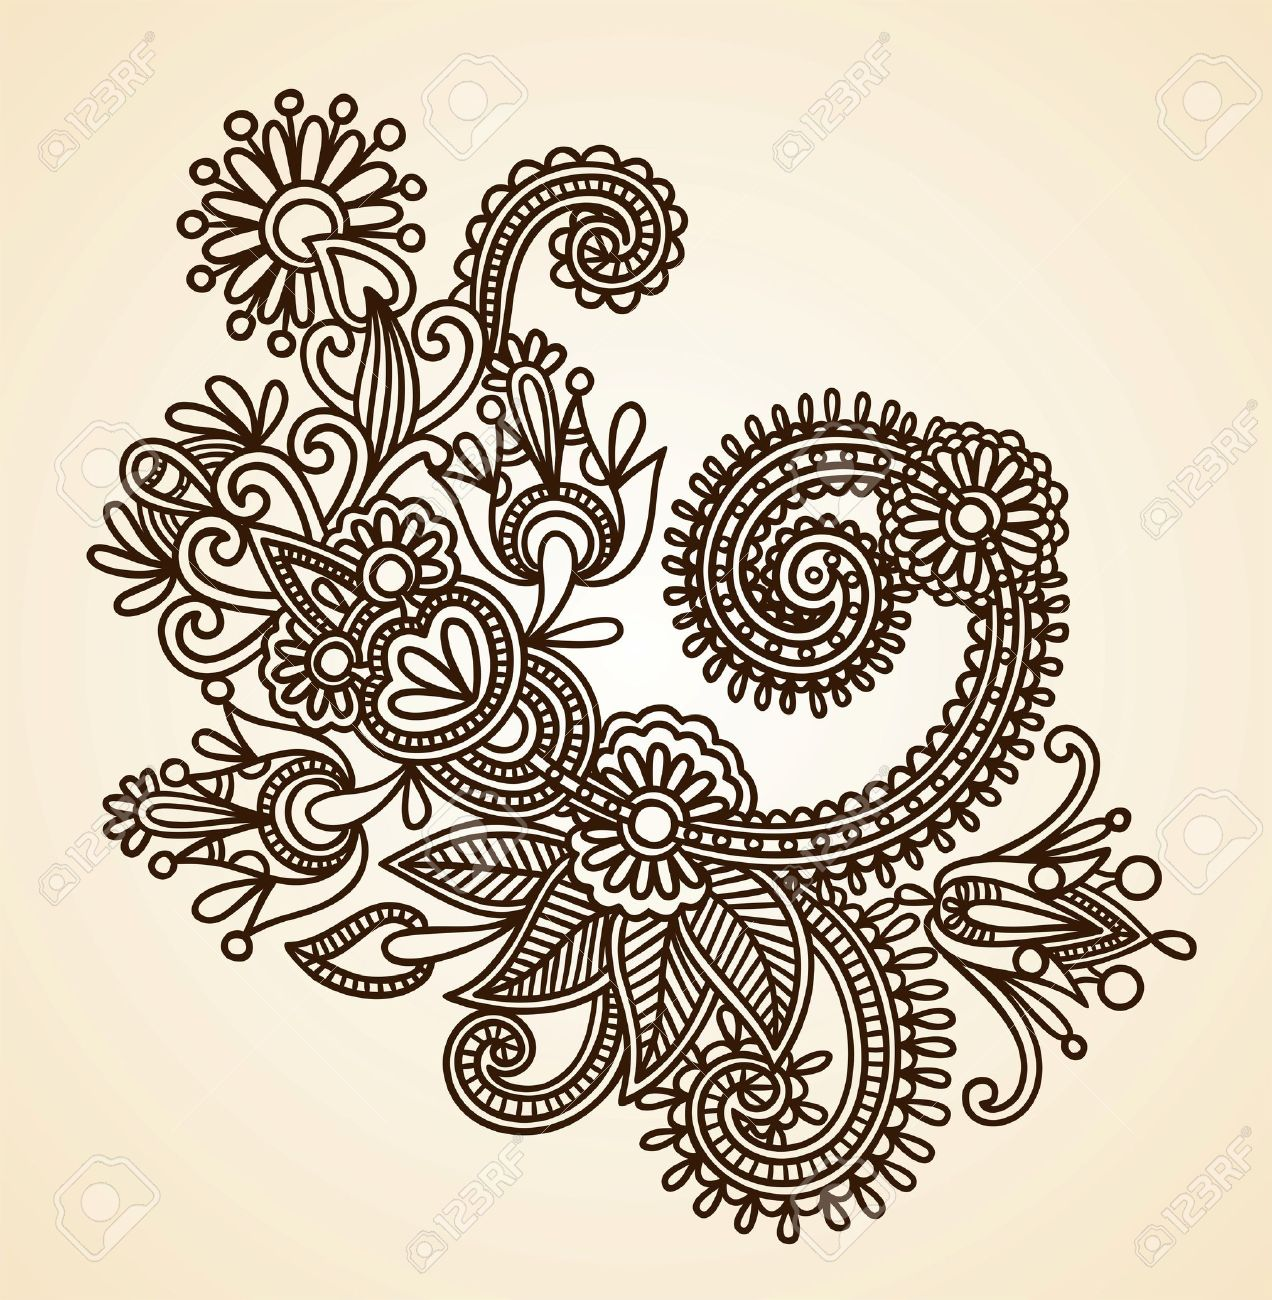 Stock Vector Illustration Hand Drawn Abstract Henna Mendie Flowers